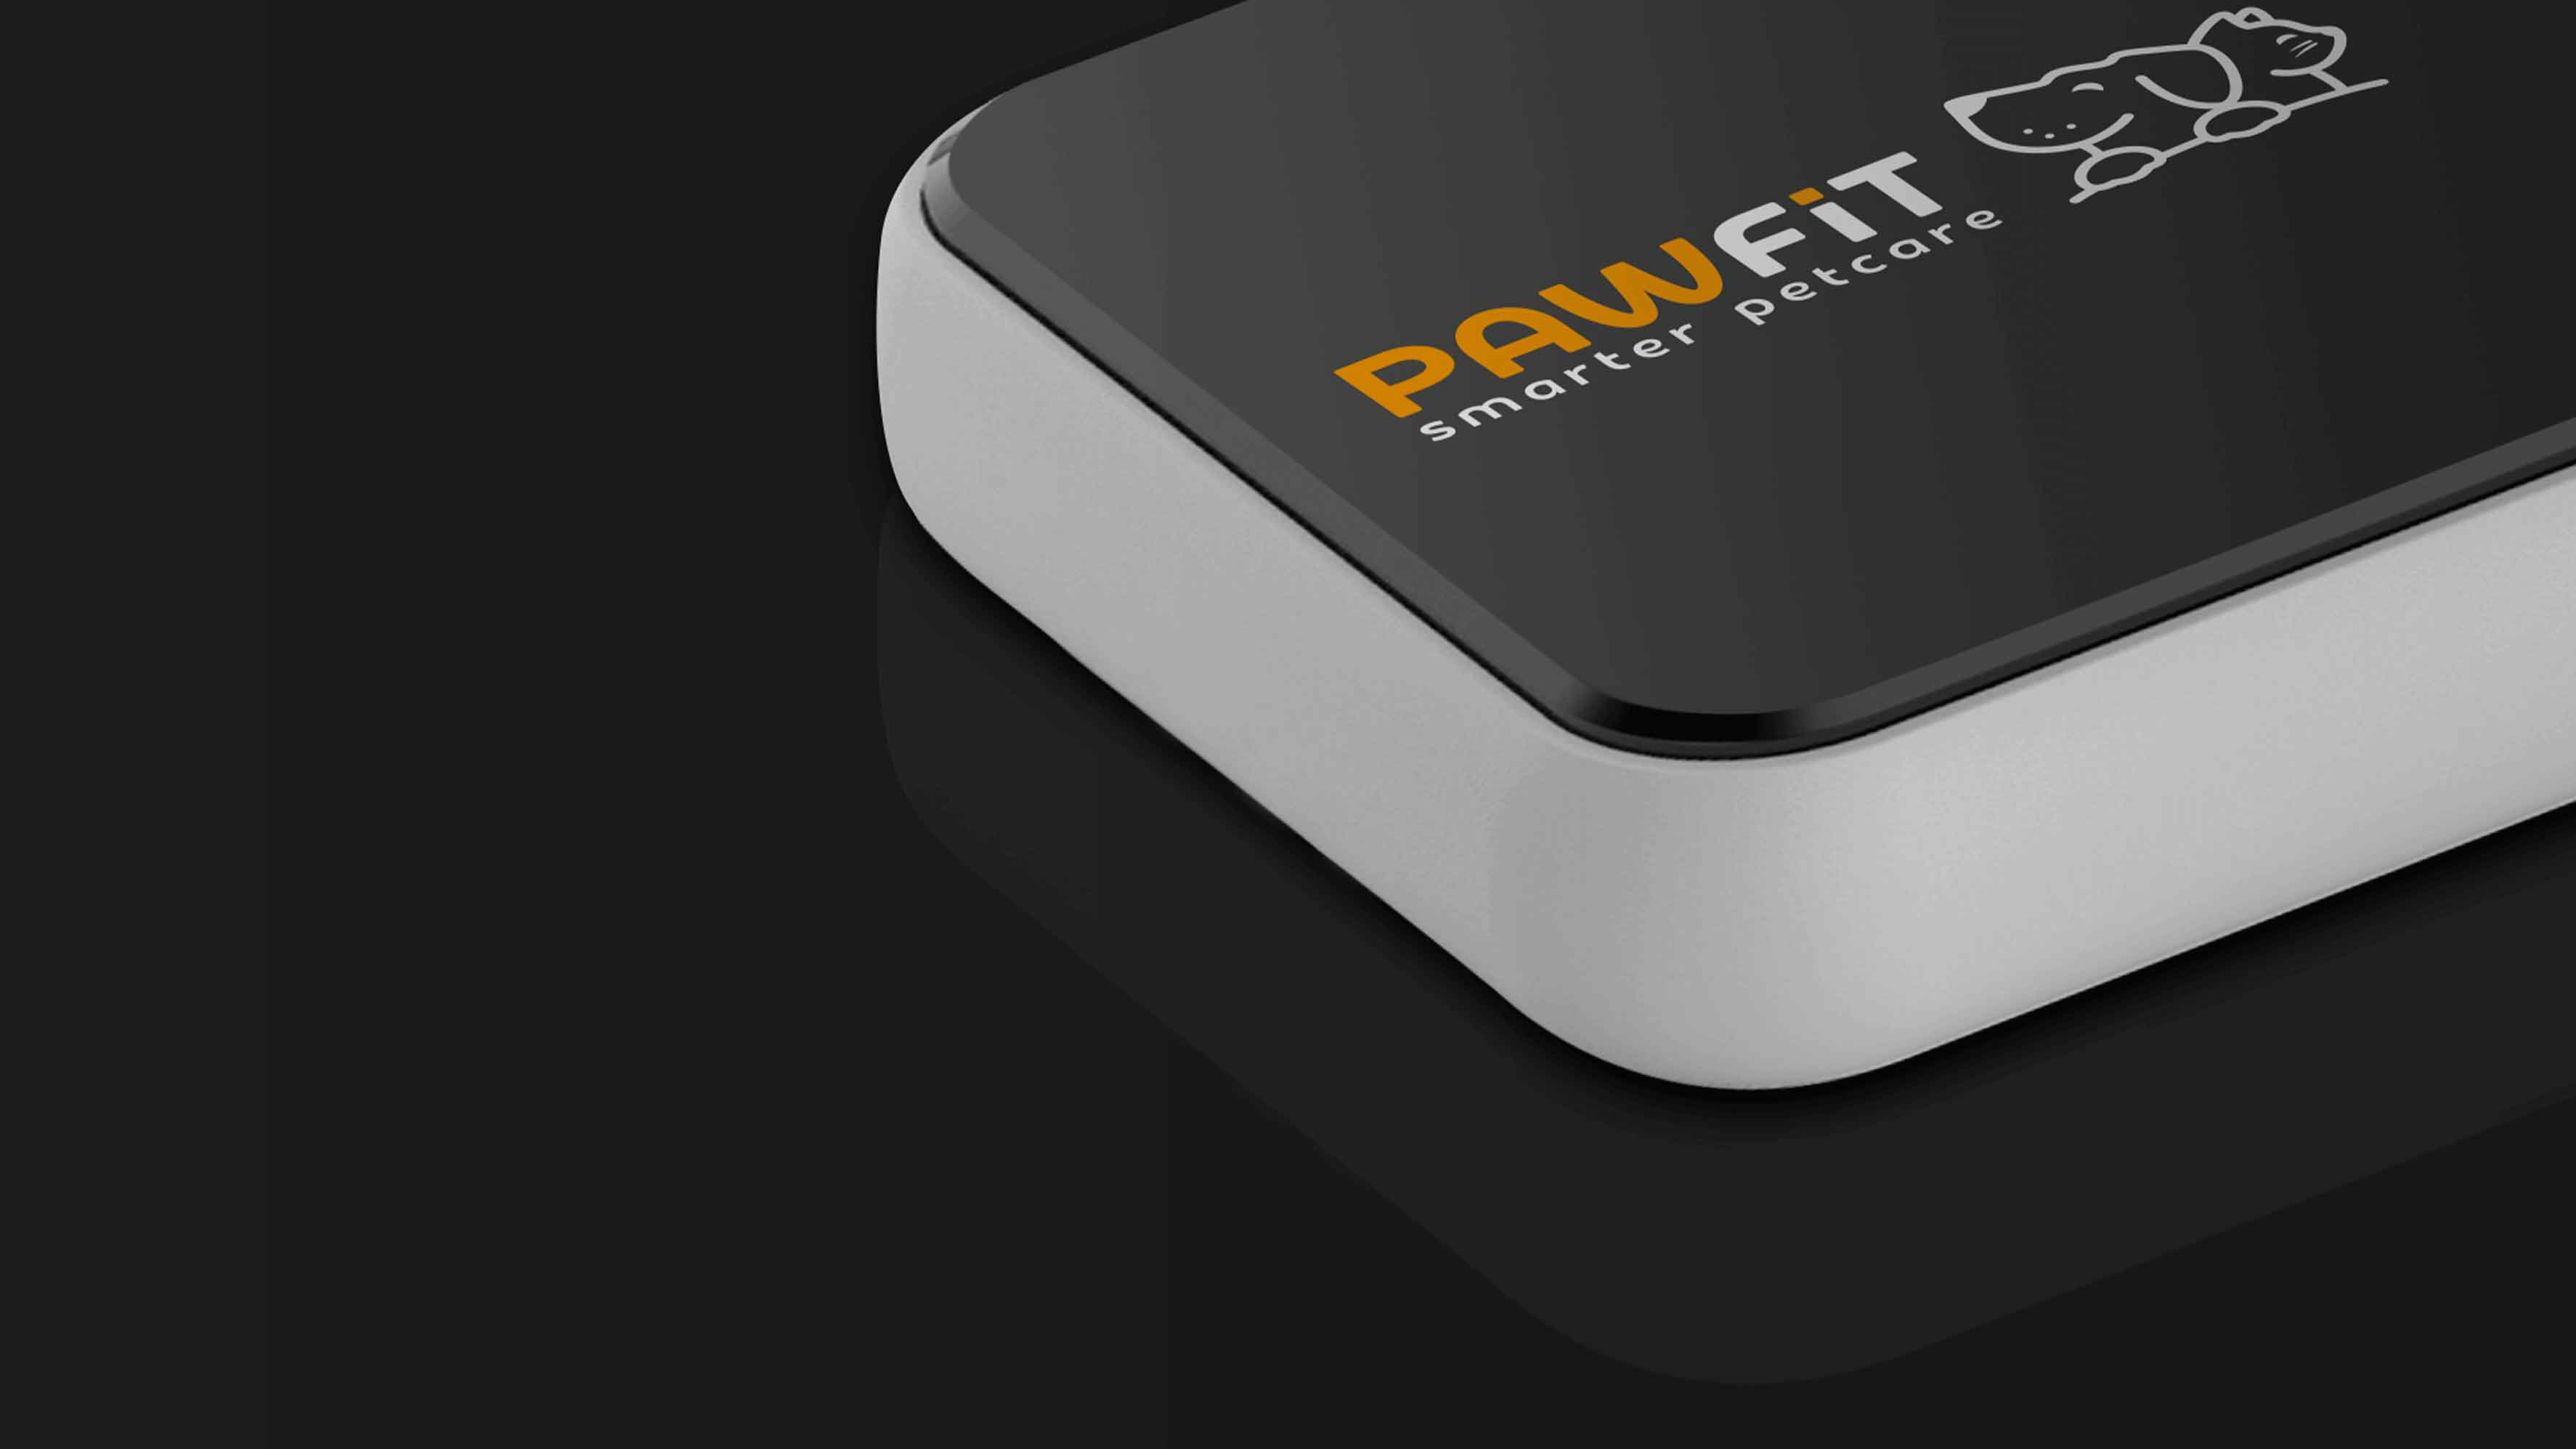 Pawfit's battery can last up to 7 days of regular use